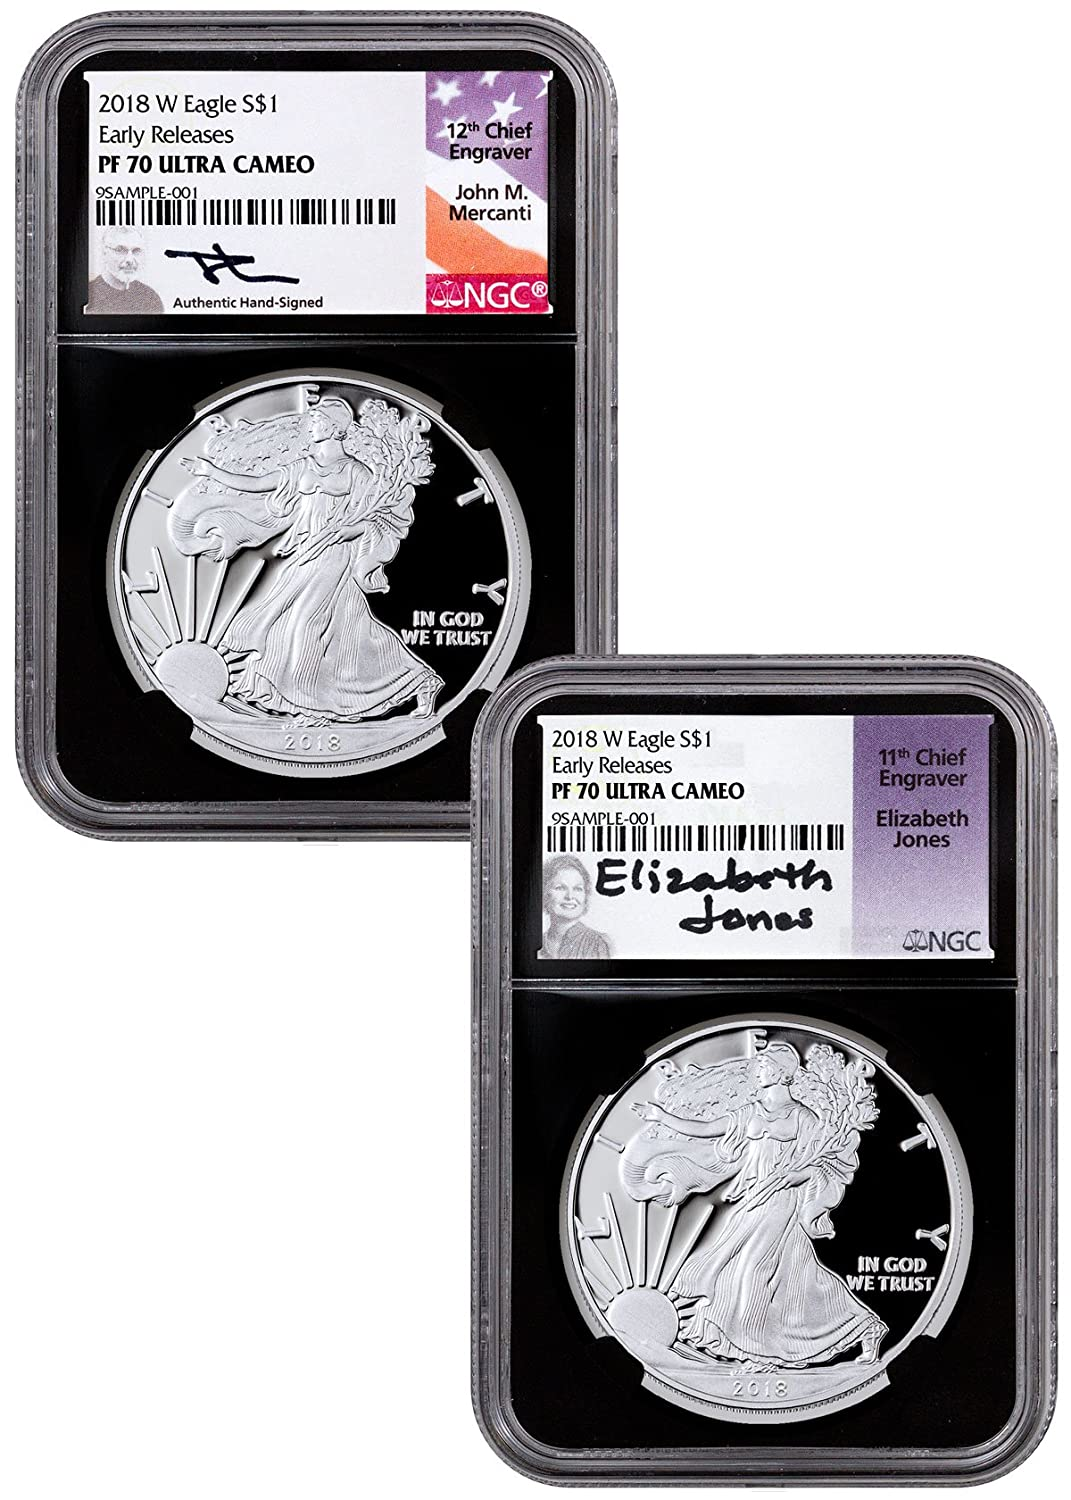 Early Releases Liberty Label 2018 W Silver Eagle Proof NGC PF70 UC